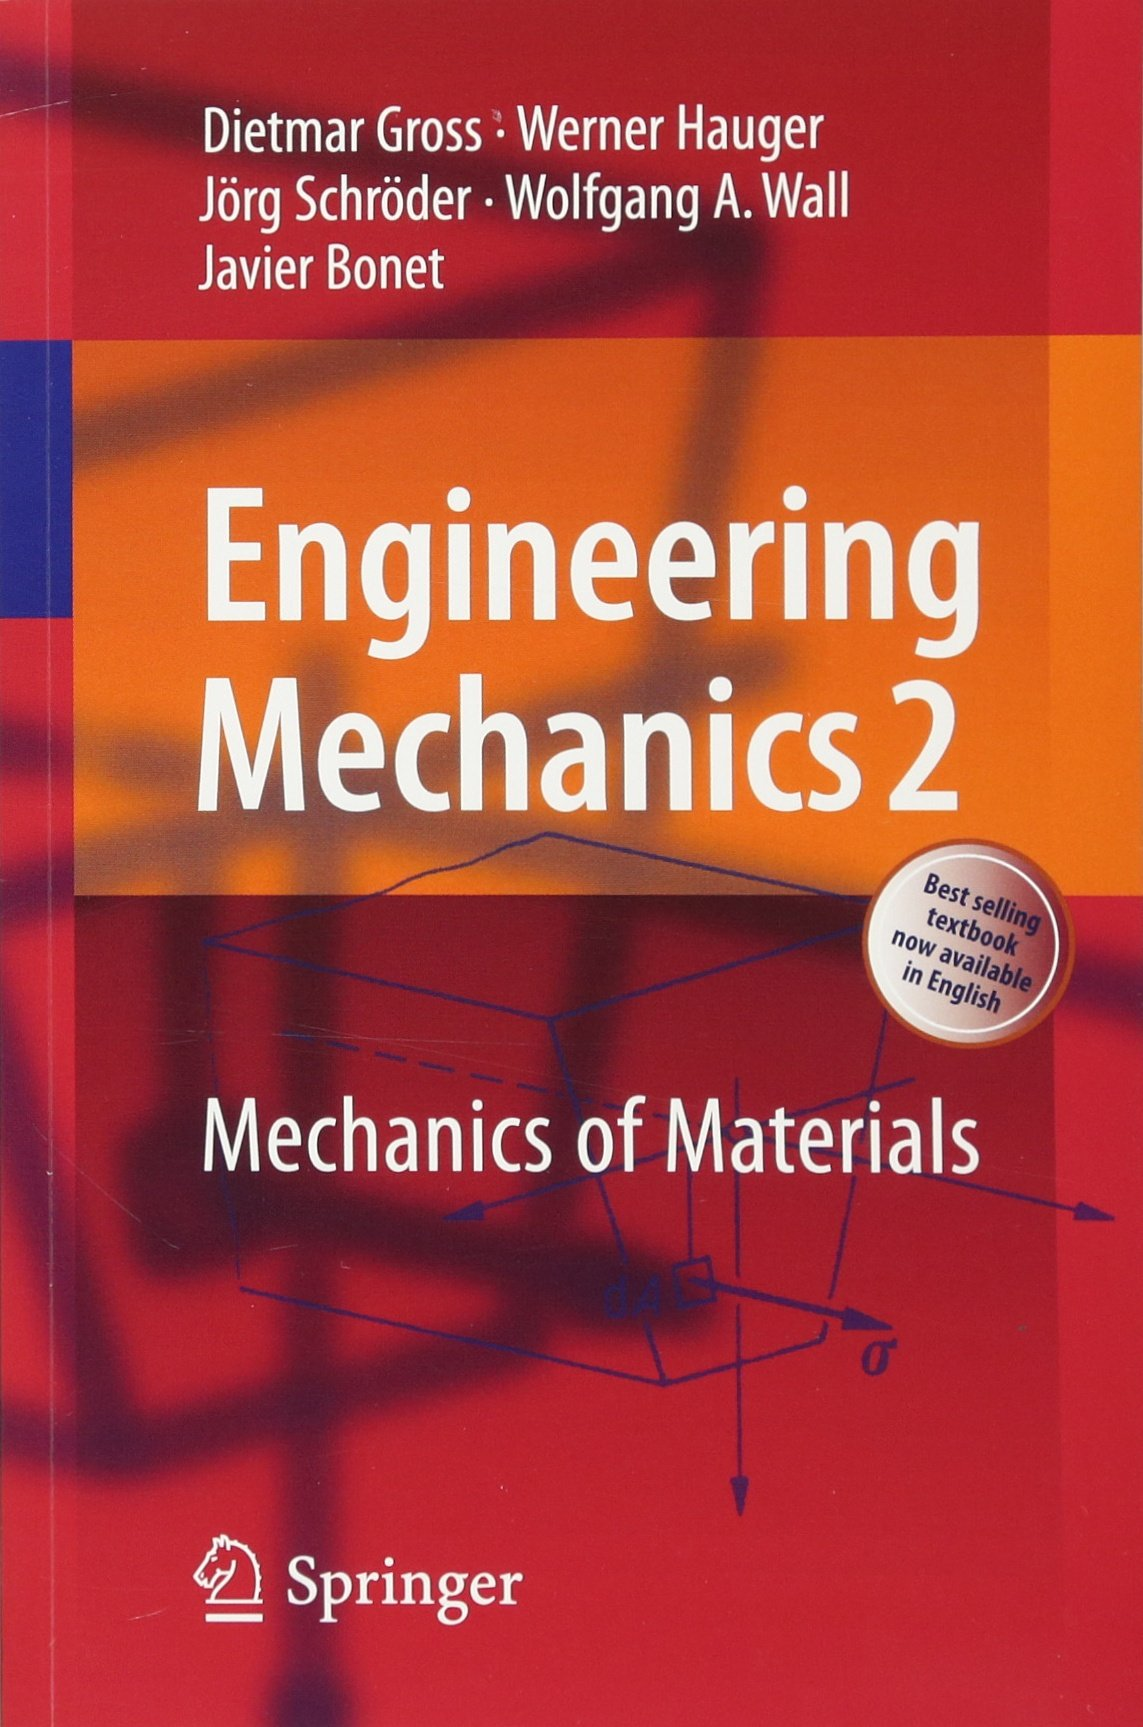 engineering mechanics 2 mechanics of materials tmar gross